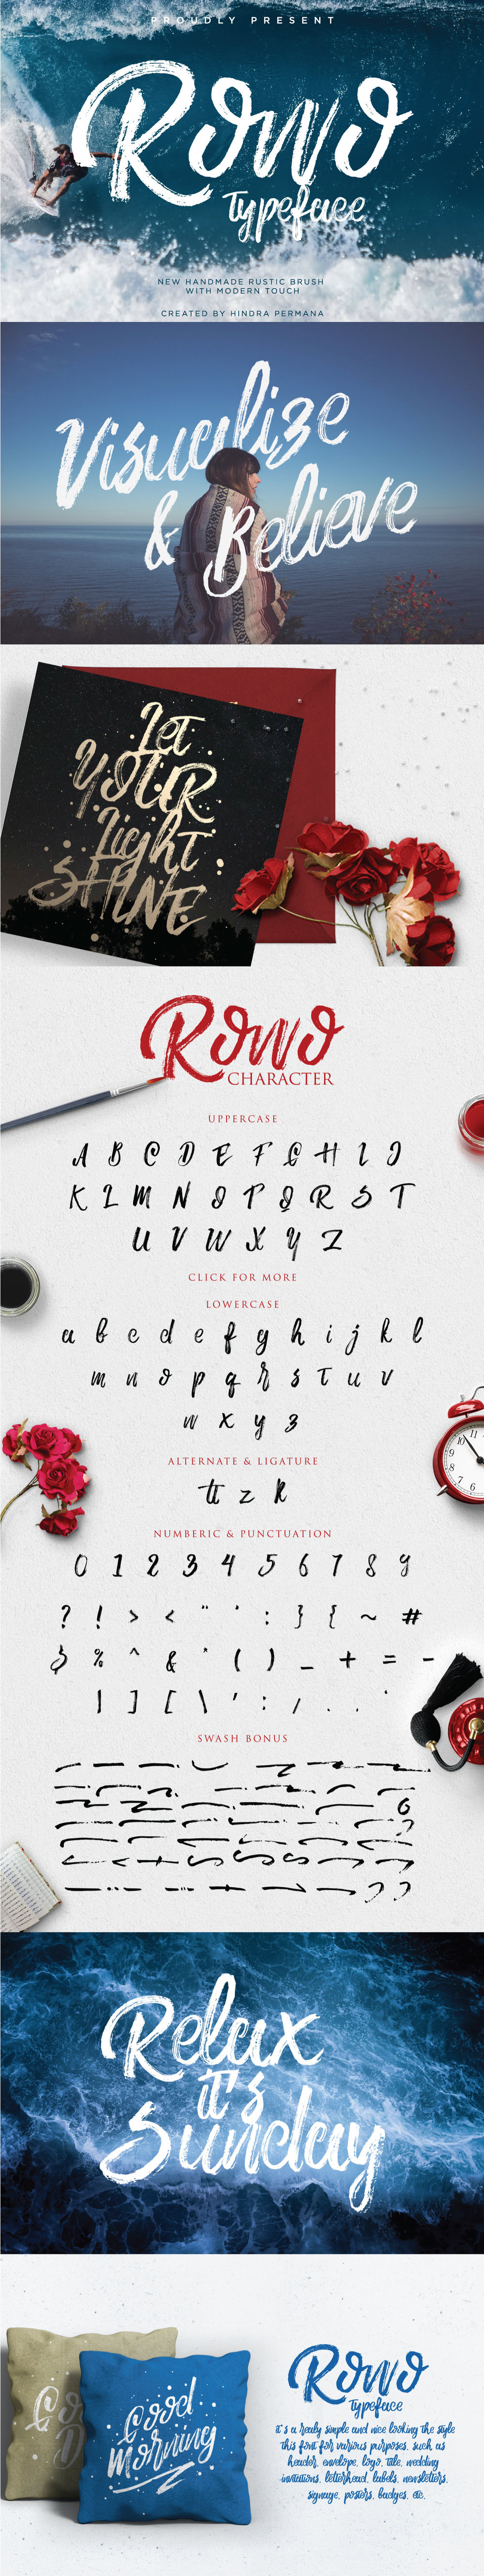 ROWO Free Brush Typeface Commercial Use